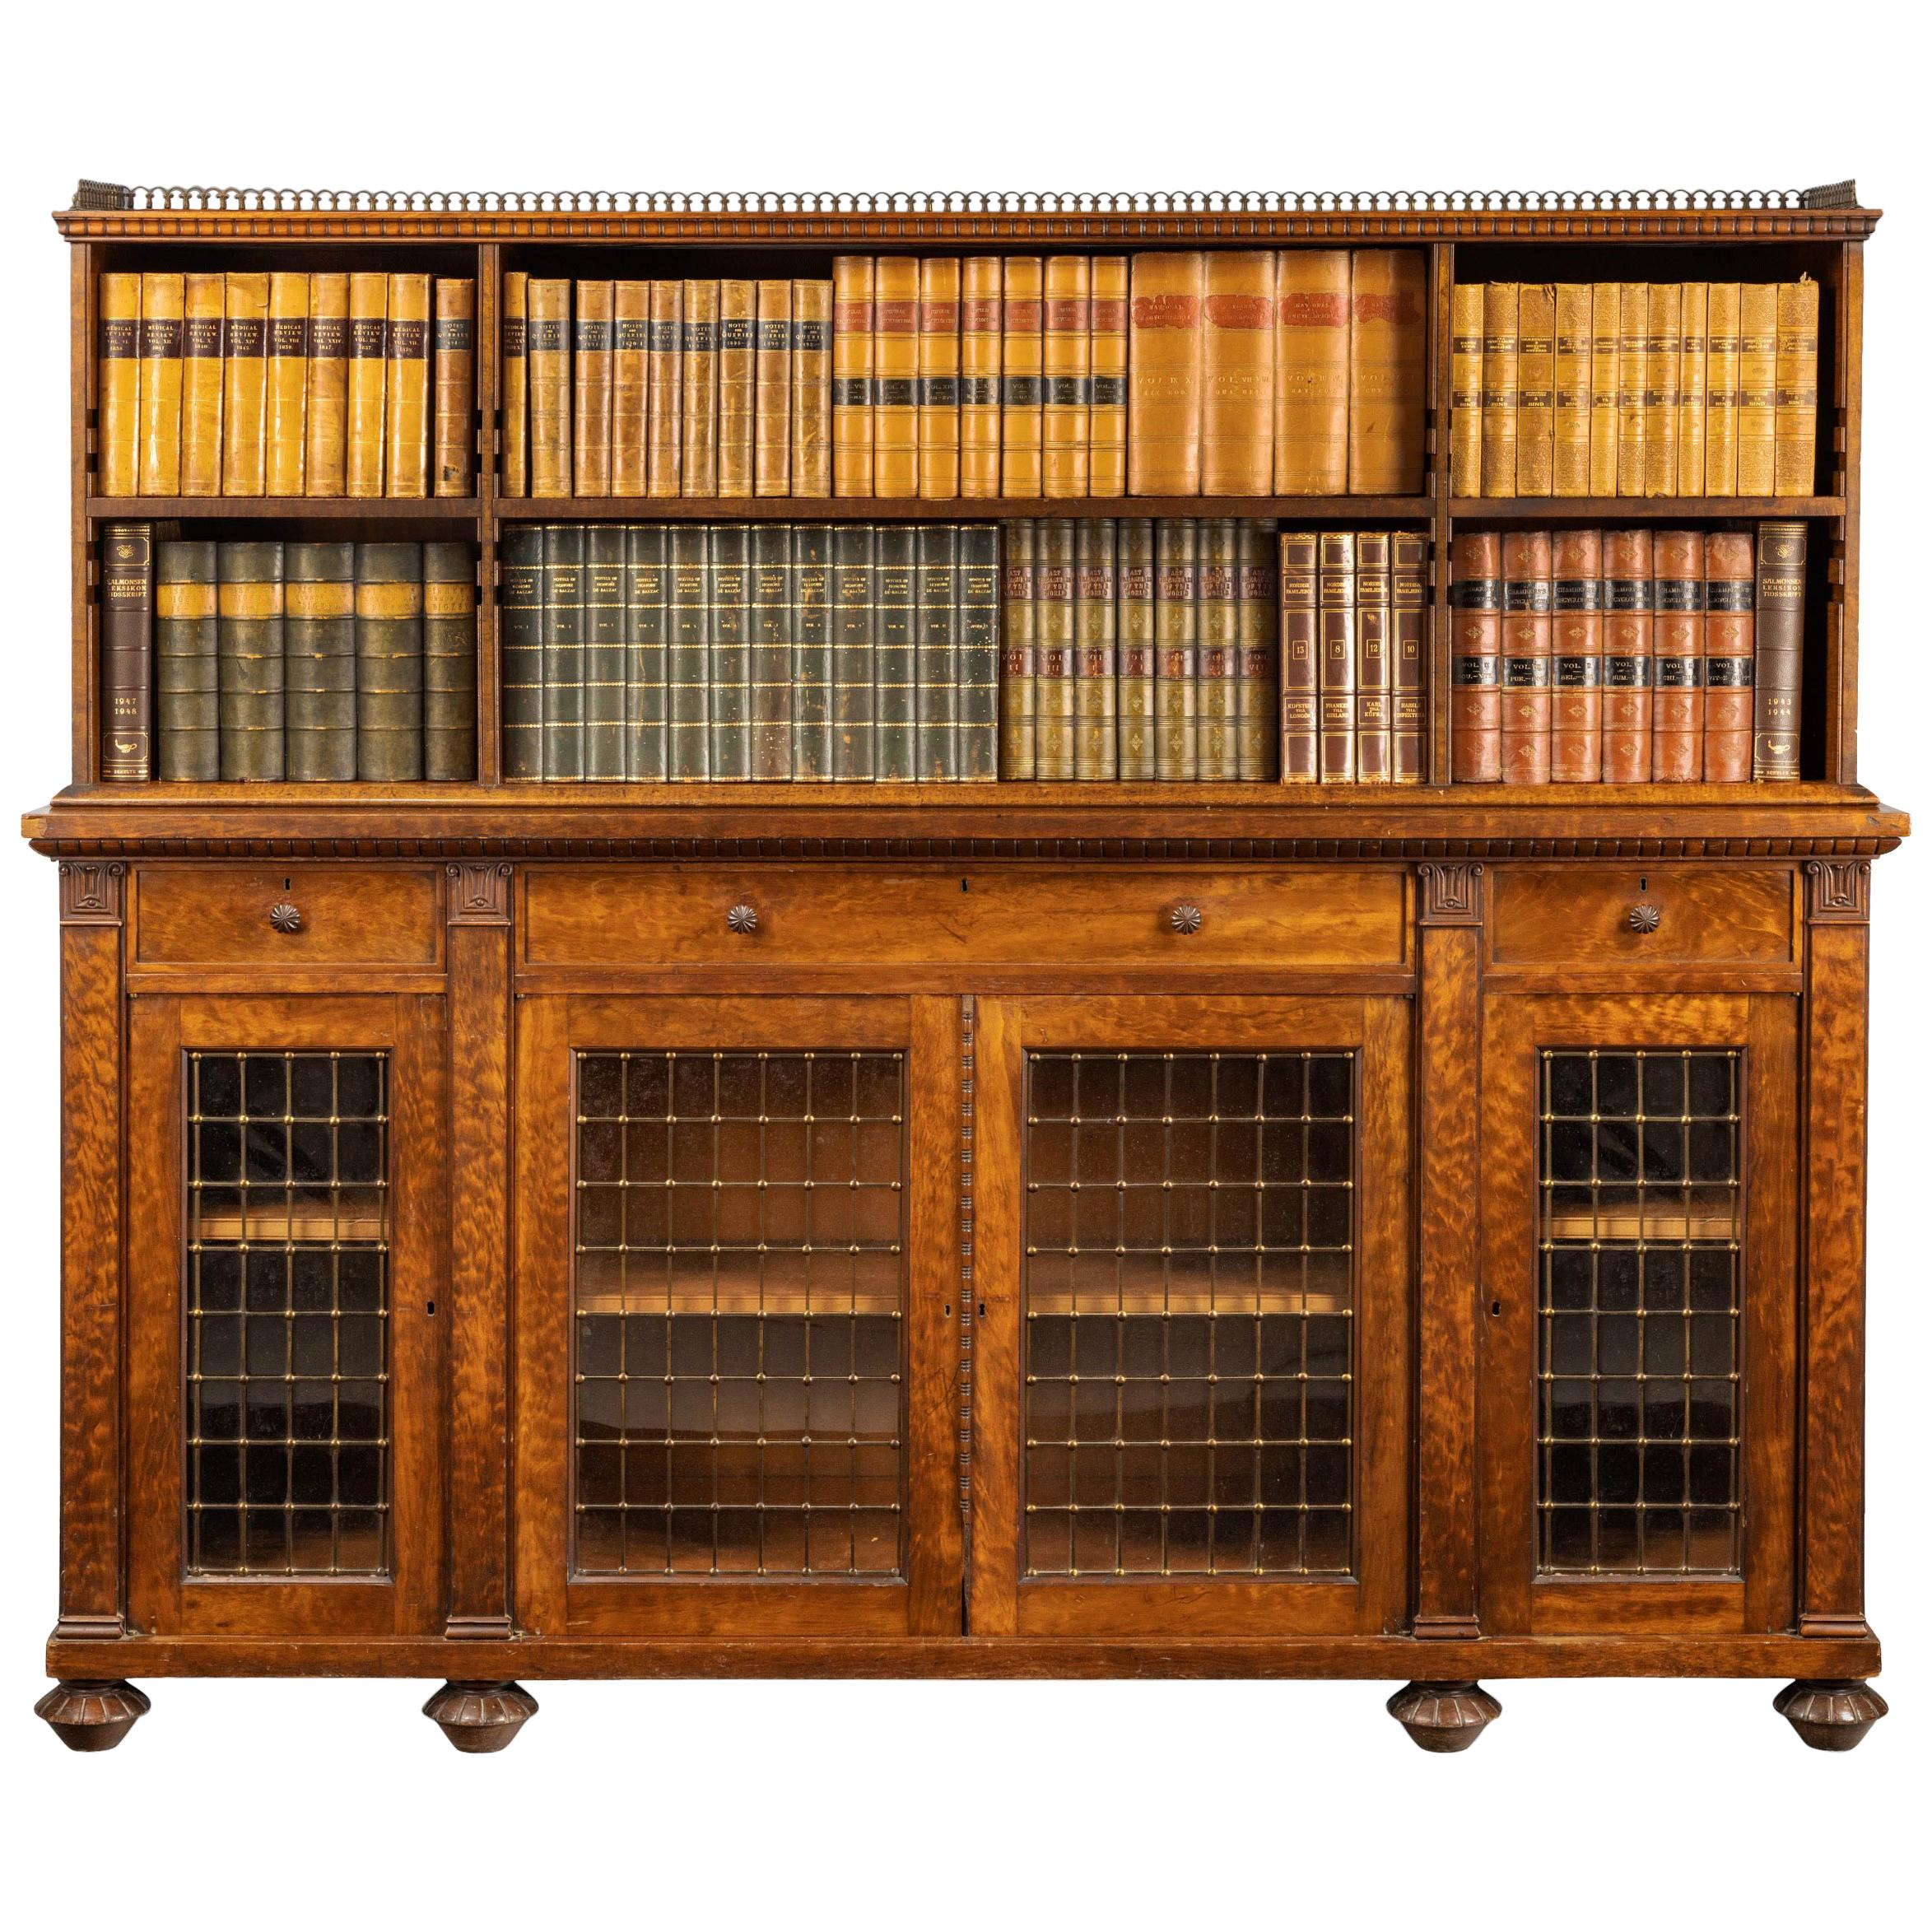 Rare Quilted Mahogany Regency Period Low Bookcase At 1stdibs